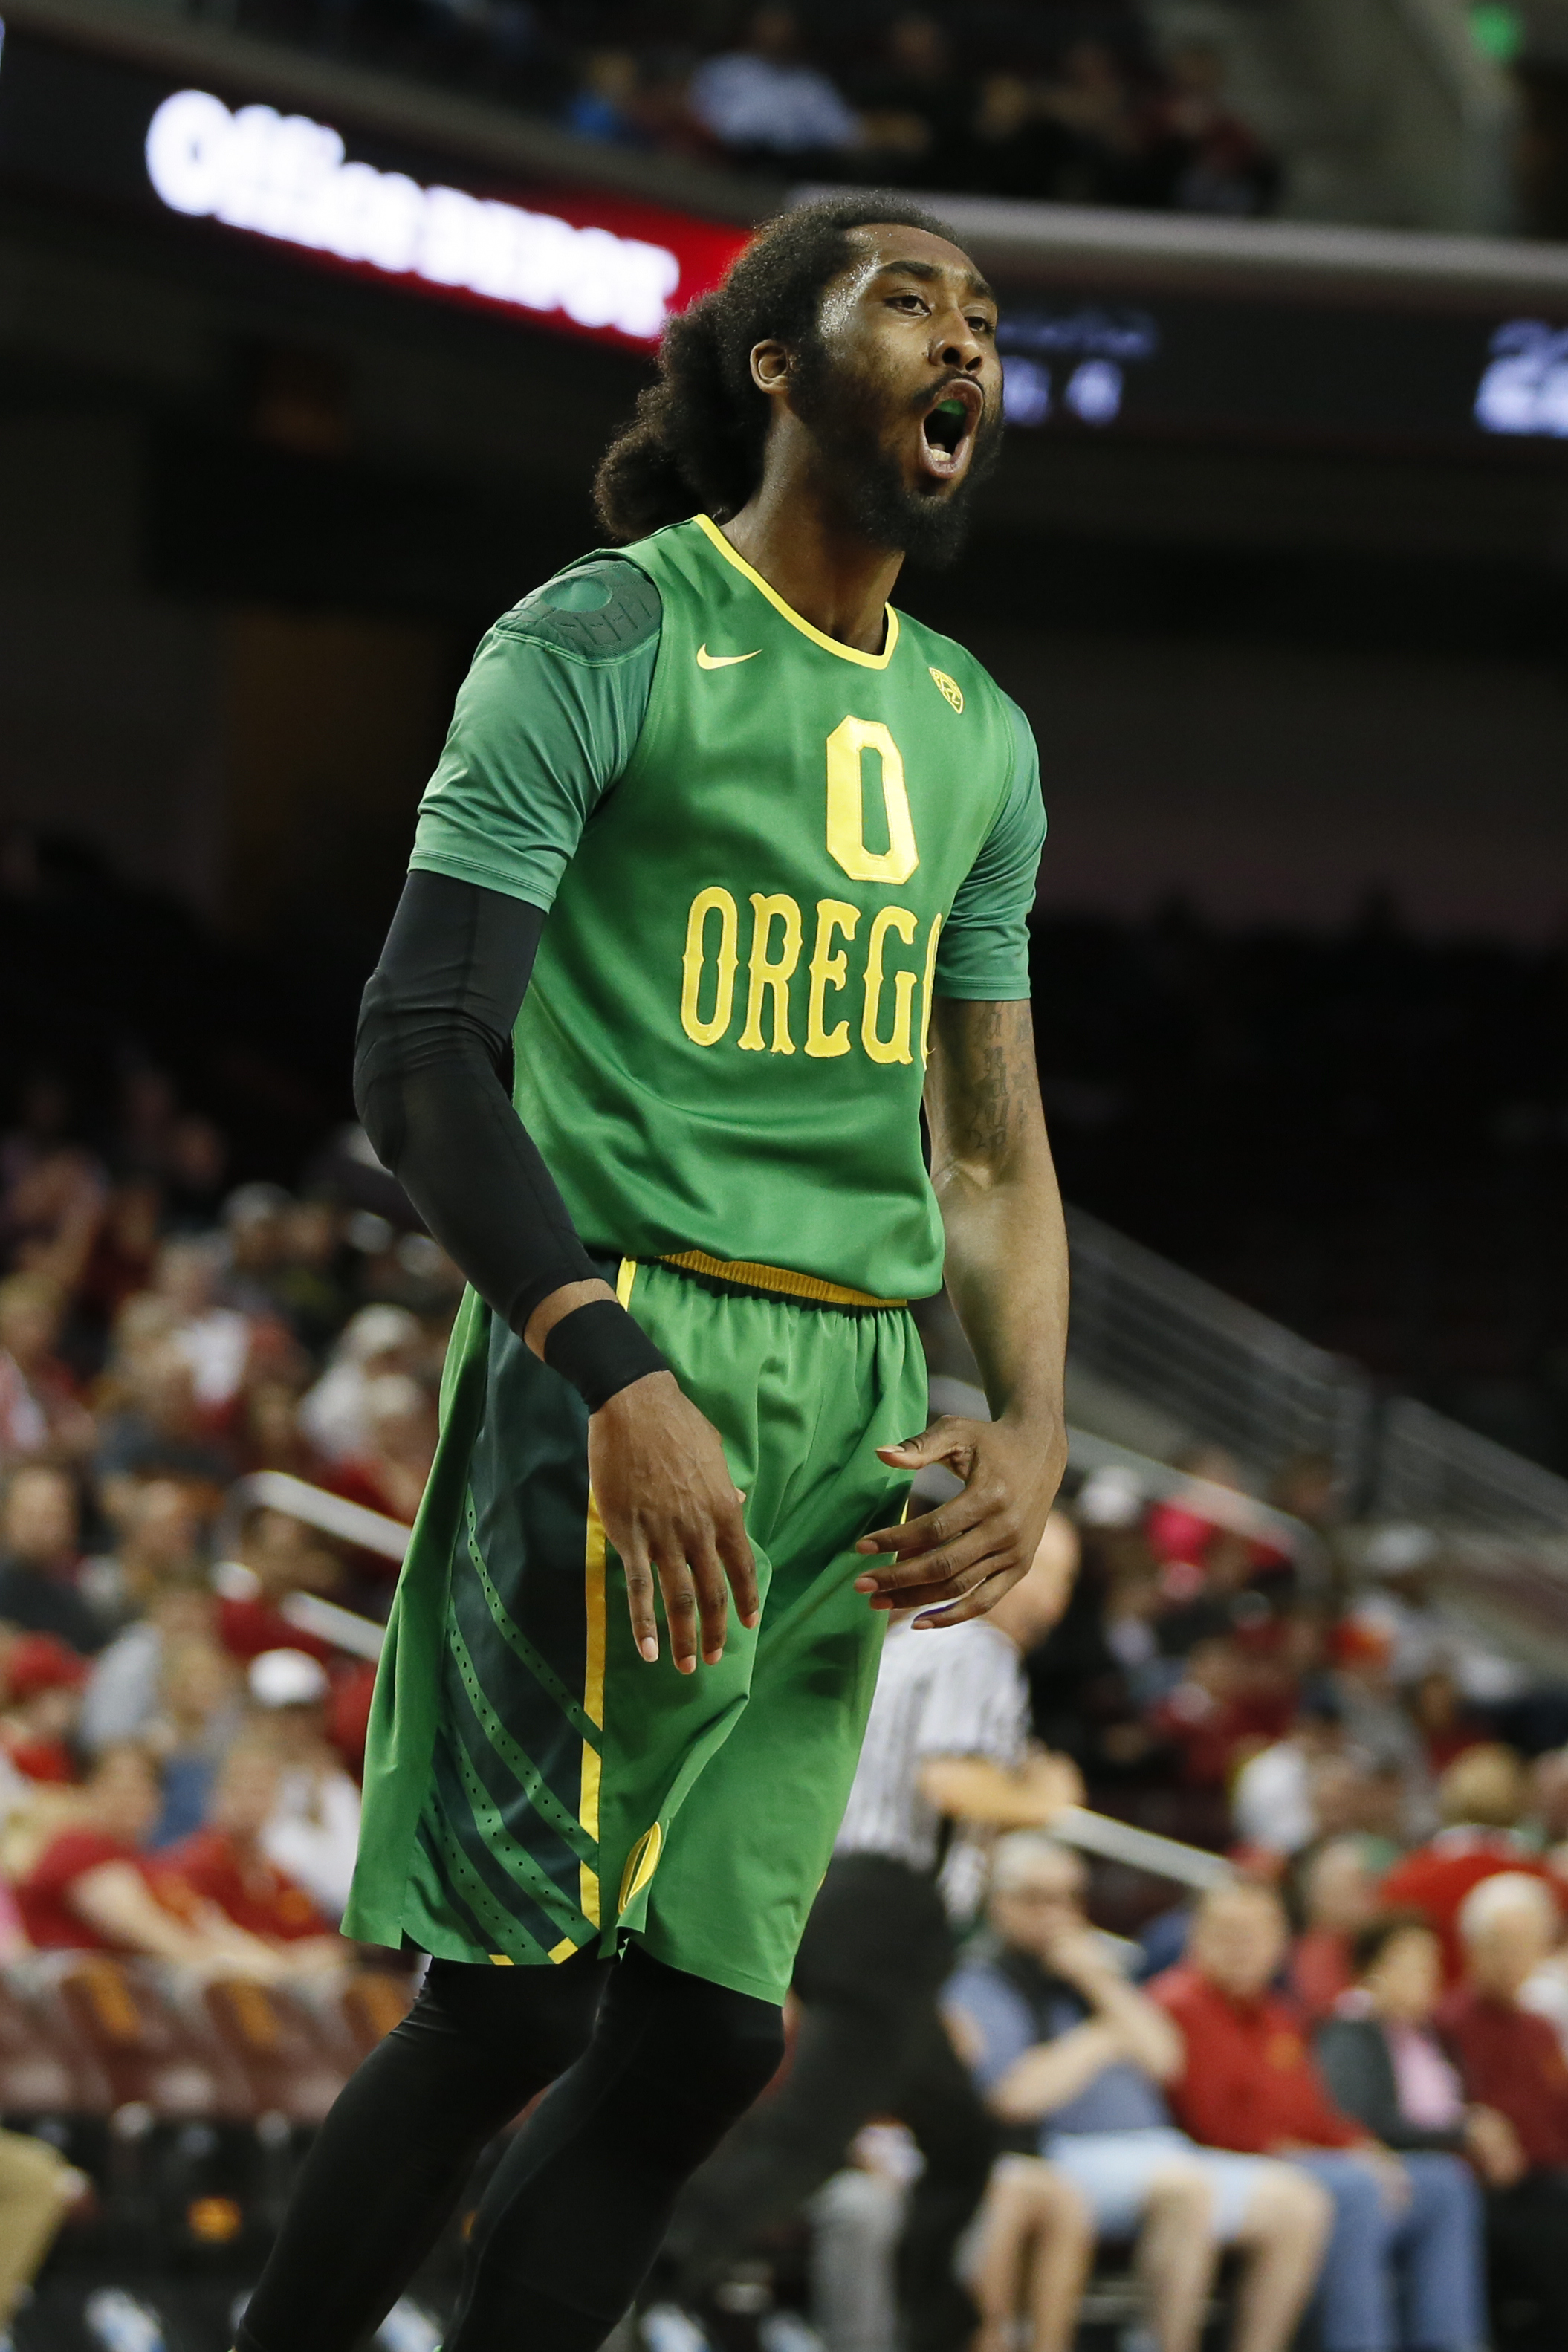 Oregon's Dwayne Benjamin celebrates after dunking the ball over Southern California's Chimezie Metu, not pictured, during the first half of an NCAA college basketball game, Saturday, March 5, 2016, in Los Angeles. (AP Photo/Danny Moloshok)